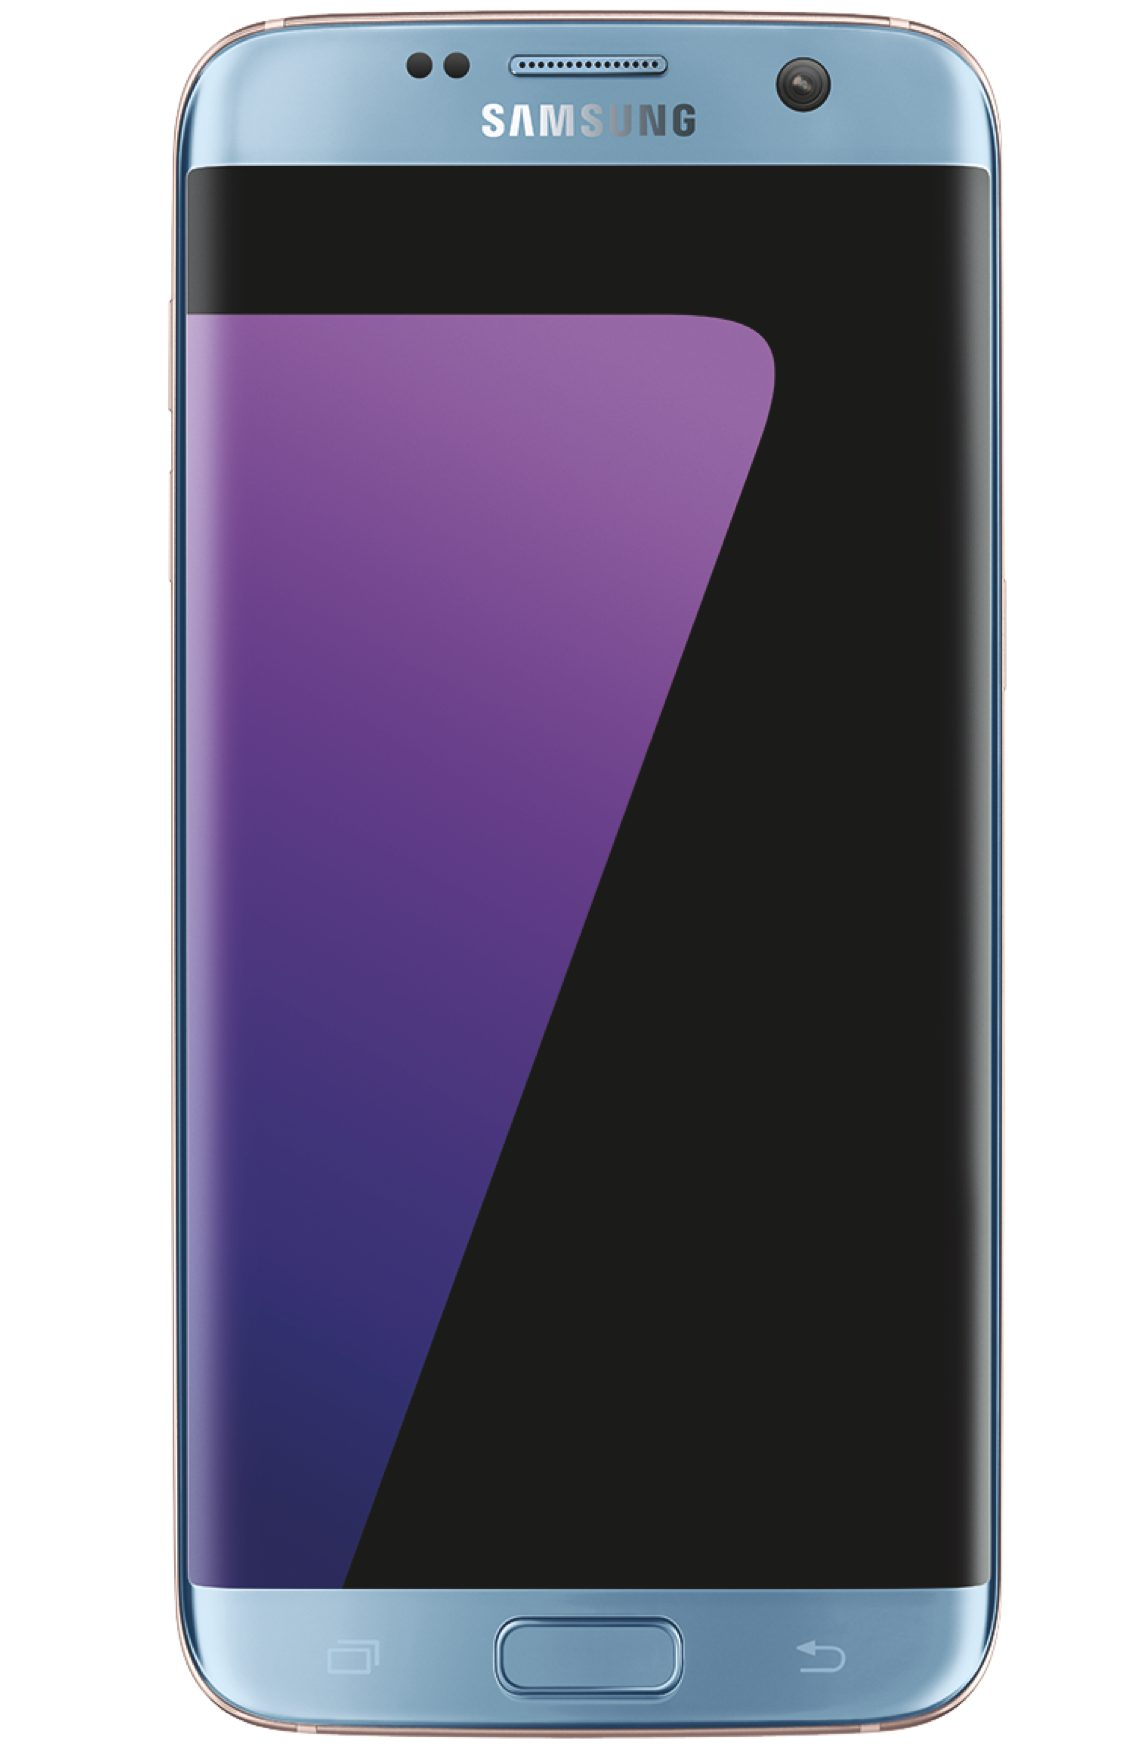 Galaxy S7 Edge Pre-Owned, 32GB, Gold Platinum, Boost Mobile